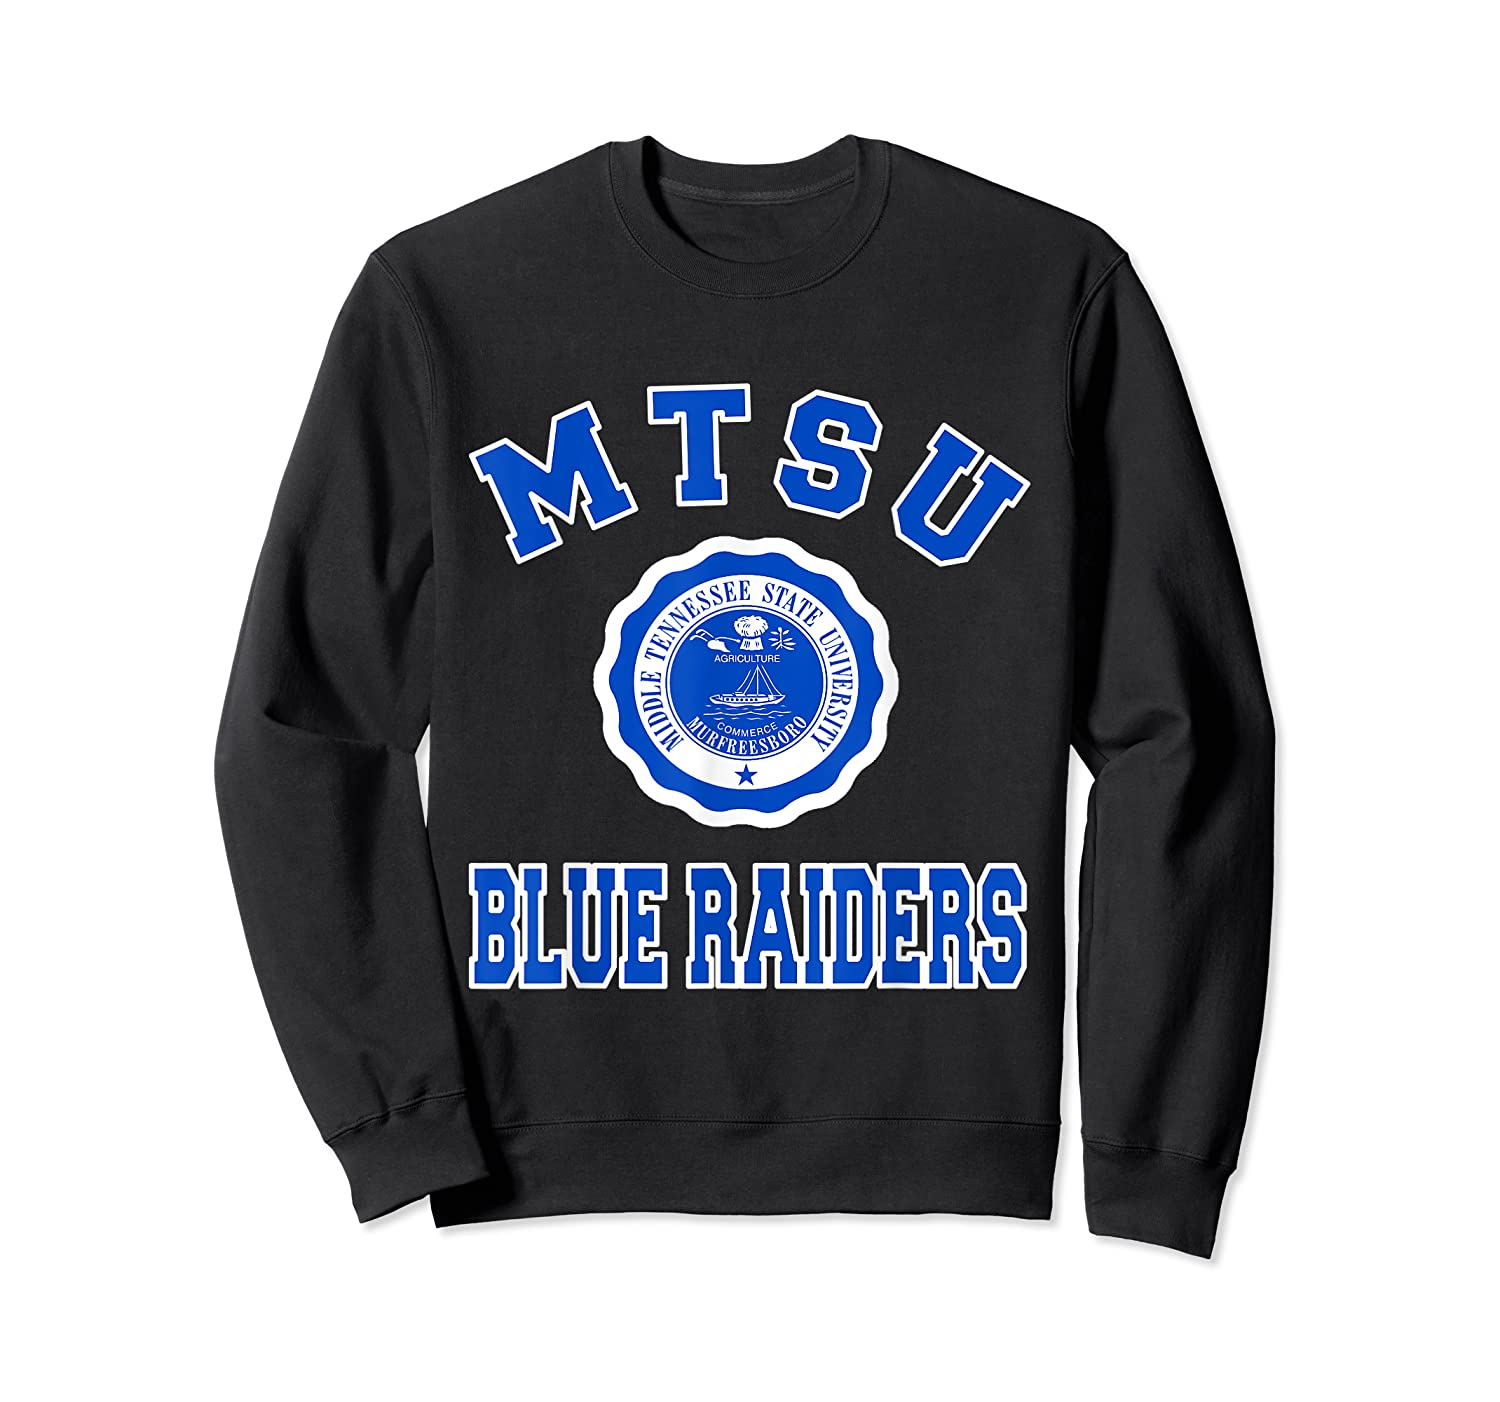 Middle Tennessee State 1911 University Apparel T Shirt Crewneck Sweater